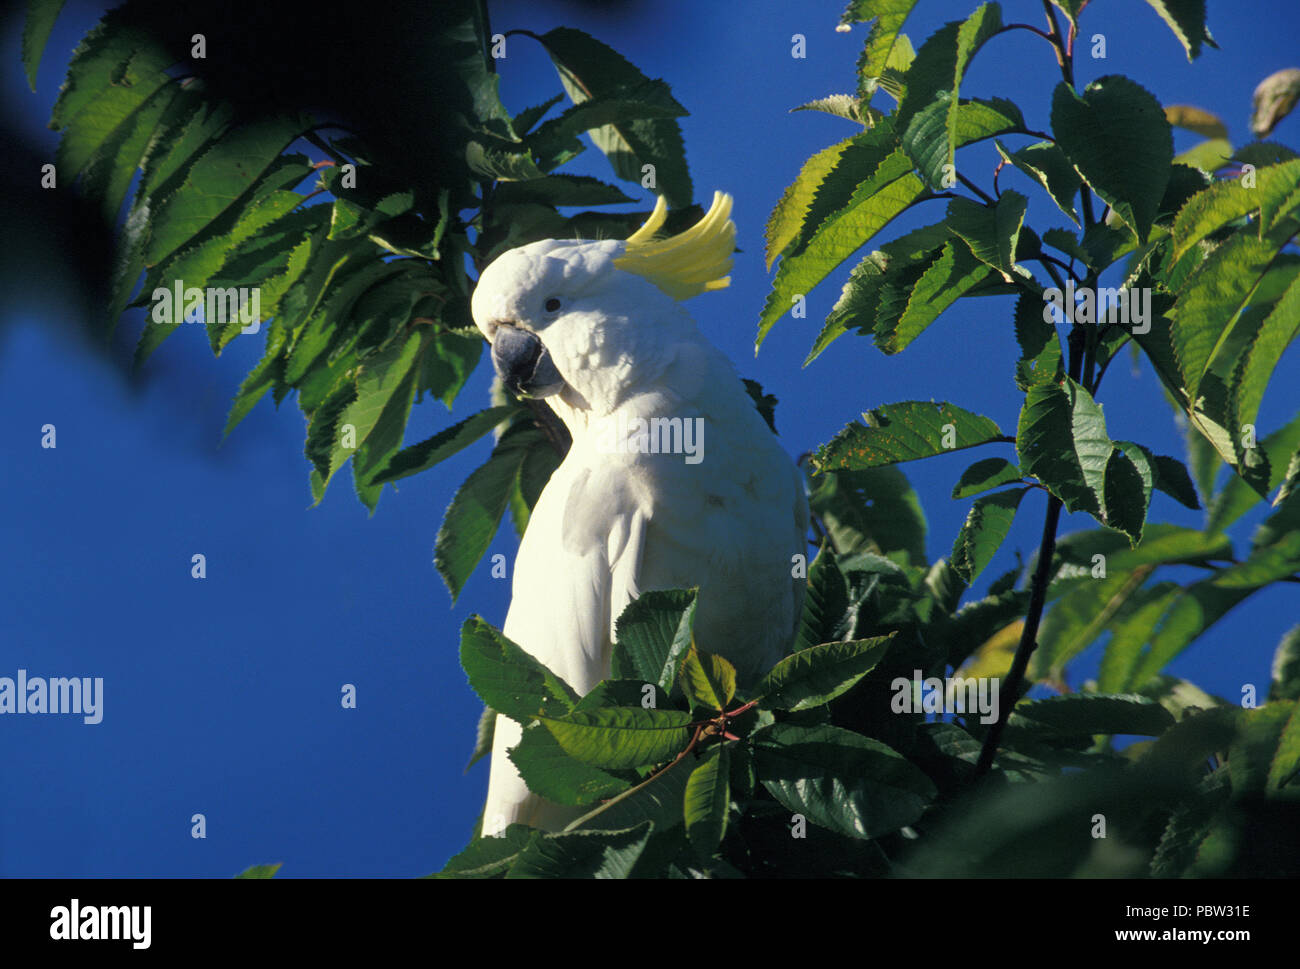 A SULPHUR-CRESTED COCKATOO (CACATUA GALERITA) IN A TREE IN THE ROYAL BOTANICAL GARDENS, SYDNEY, NEW SOUTH WALES, AUSTRALIA - Stock Image